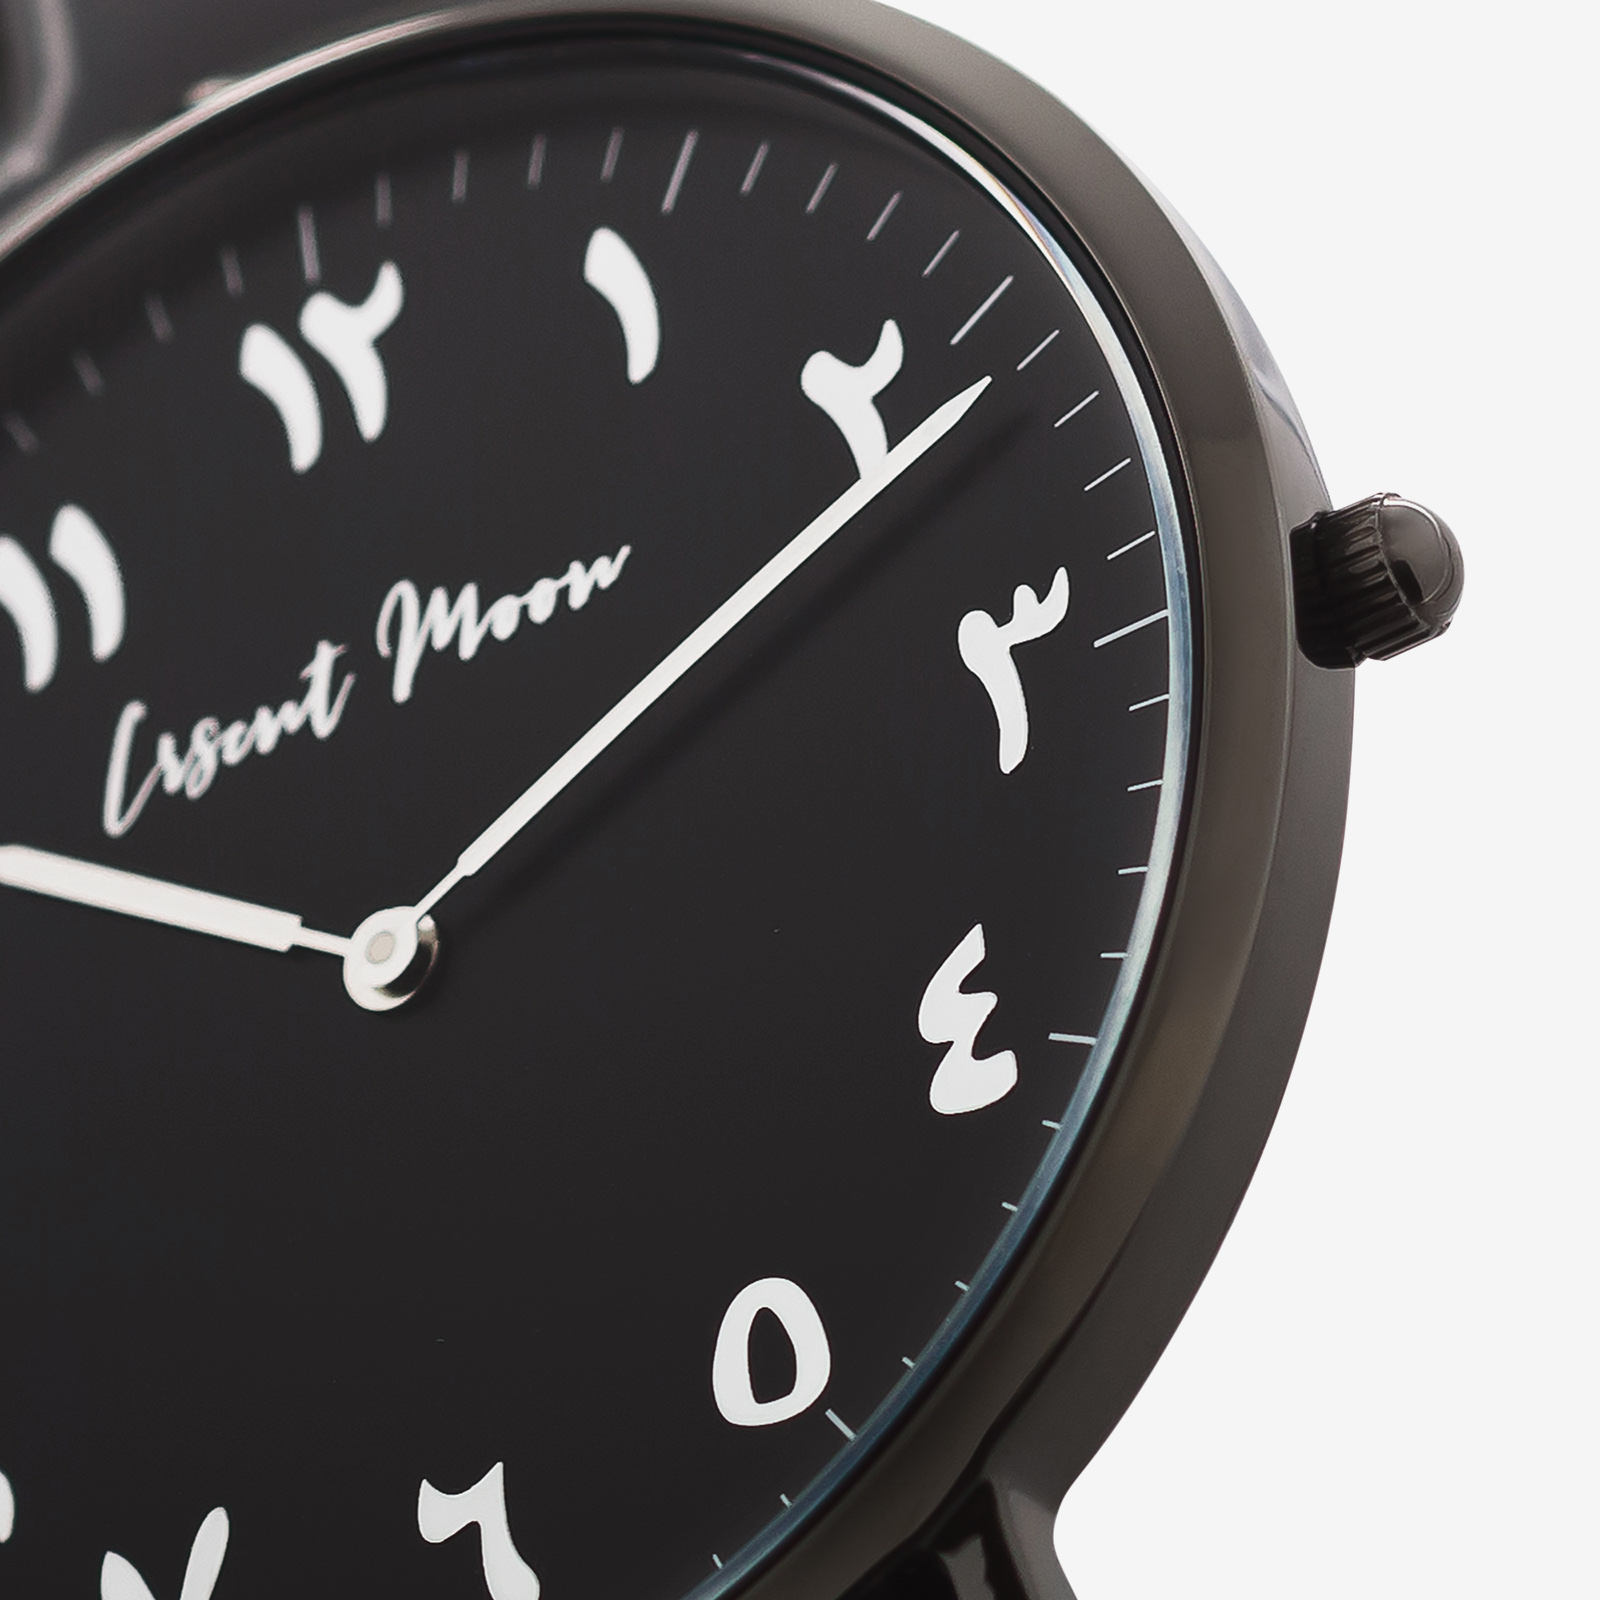 Watch close up product picture